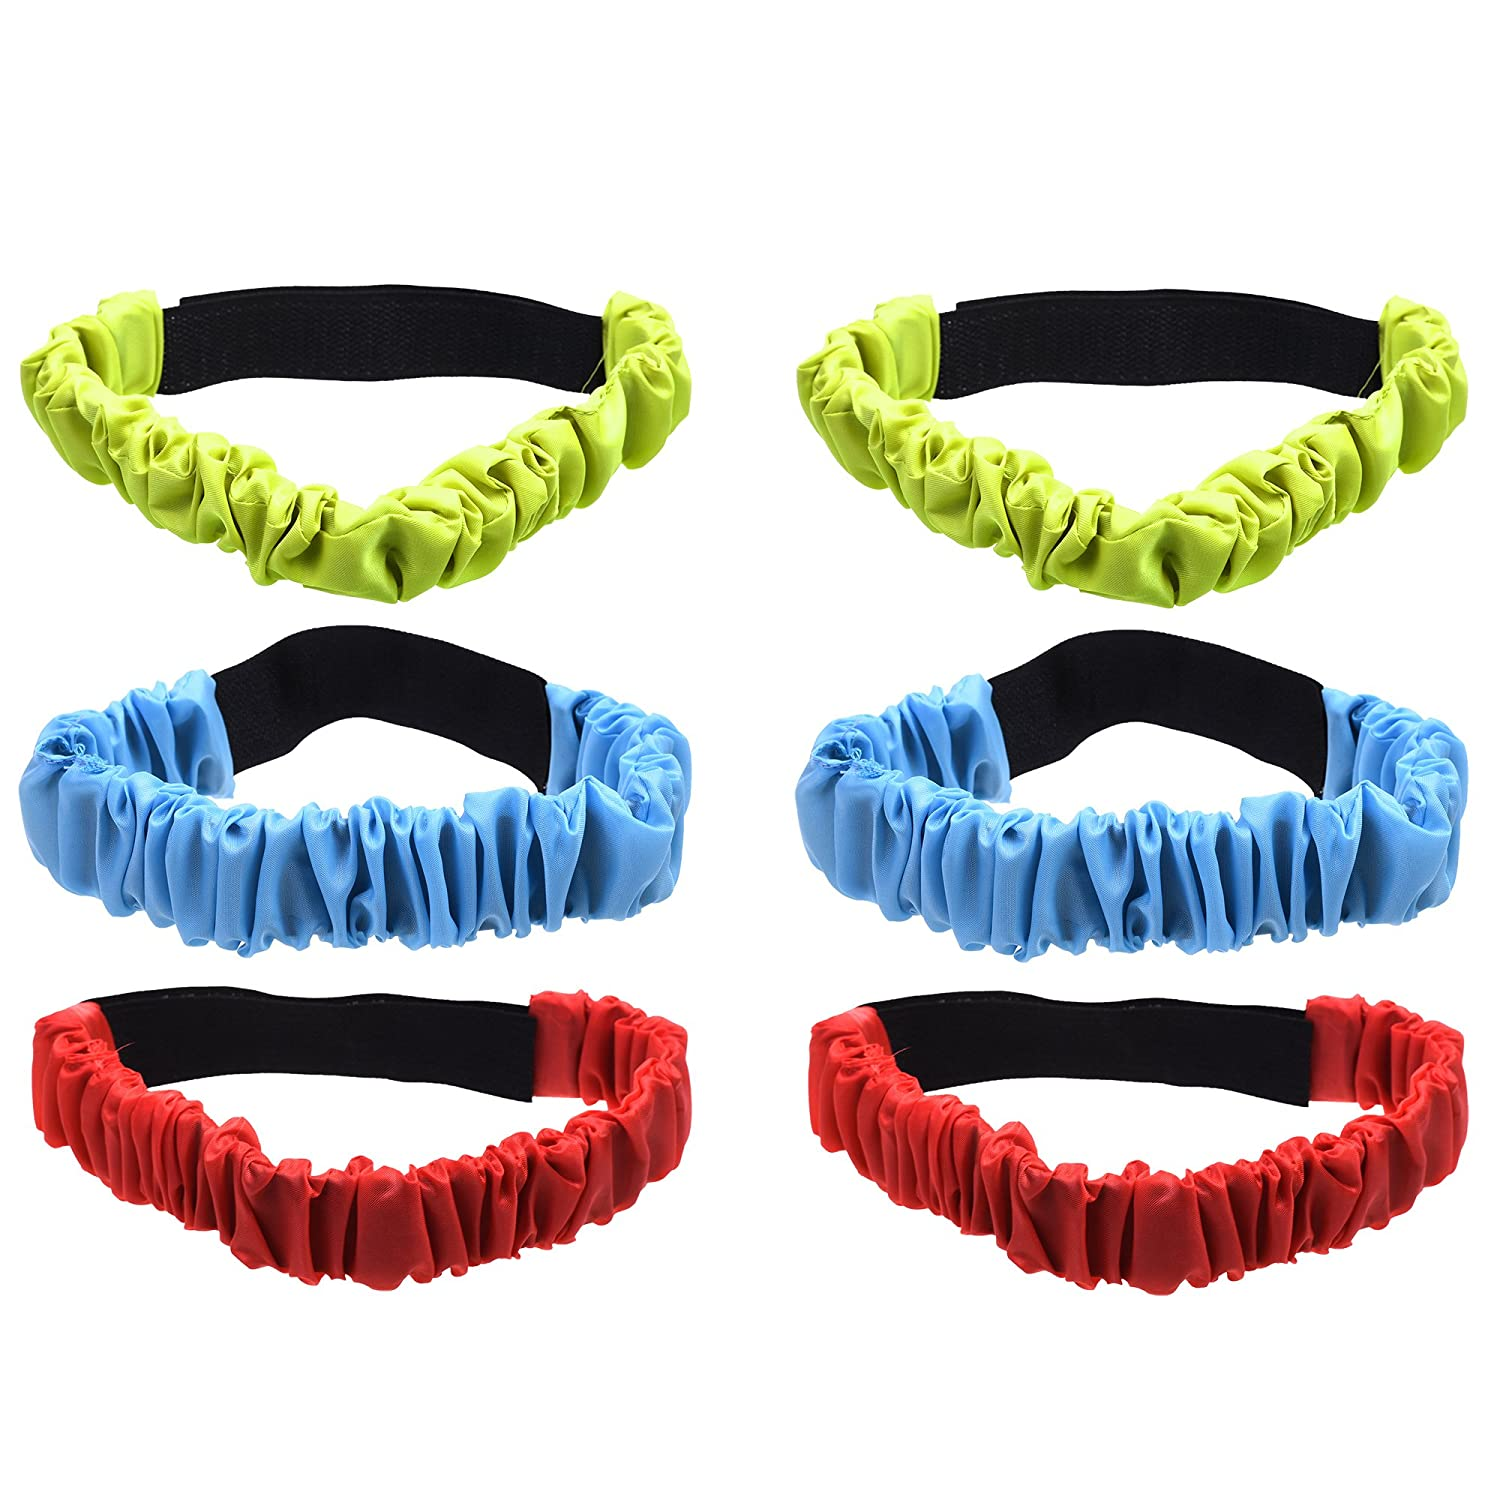 COSMOS 3-Legged Race Bands, Elastic Race Straps for Backyard Relay Game Party Game, 3 Different Colours, Pack of 6 B07413GG5D